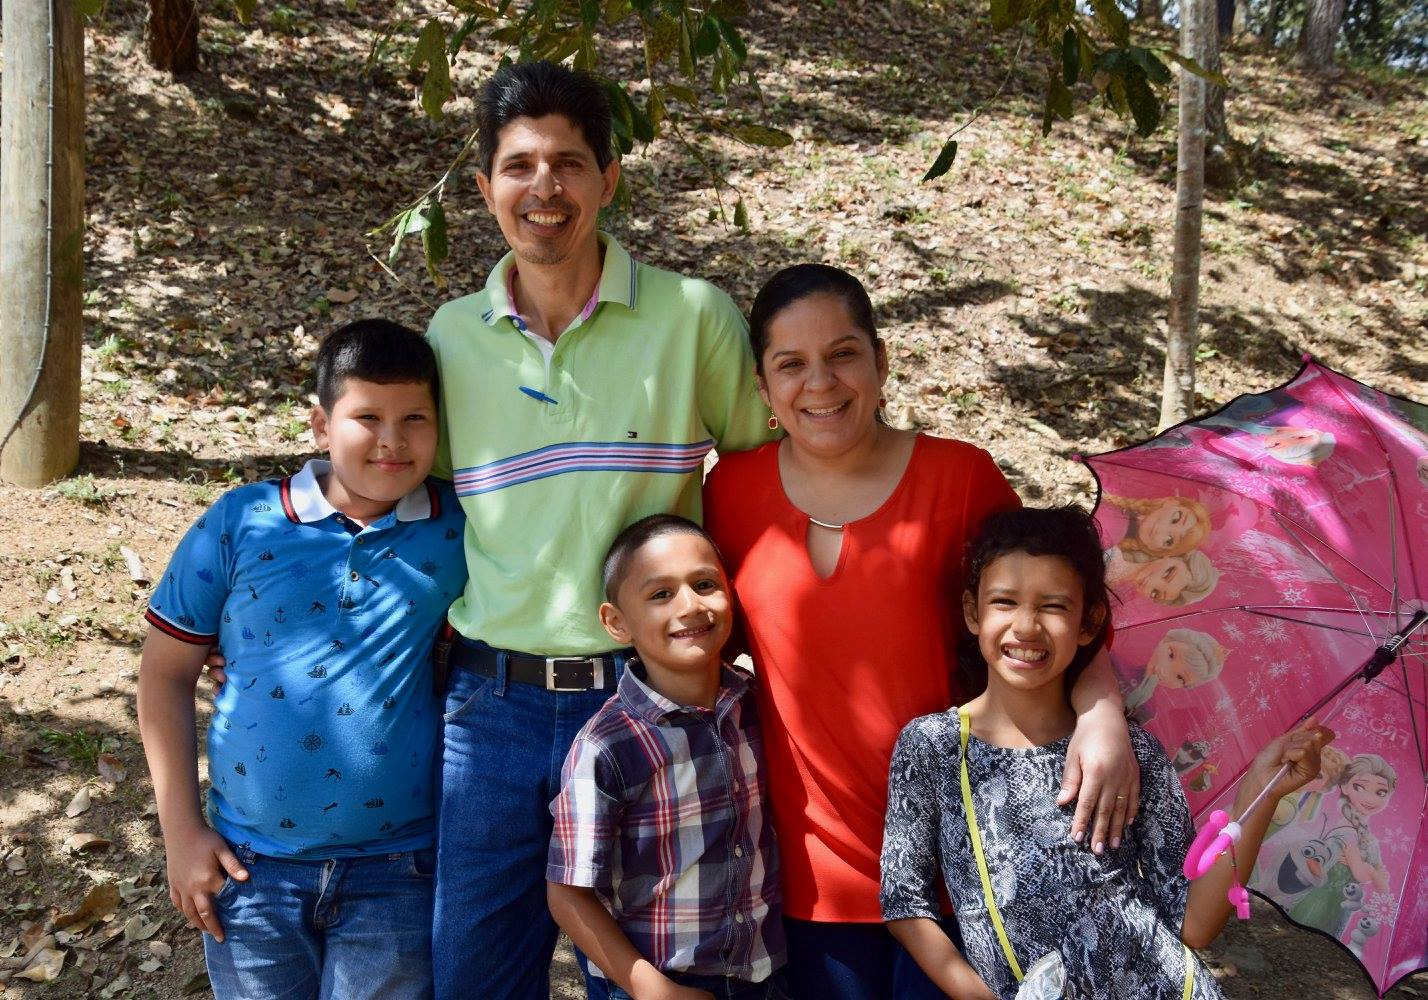 Felipa (right) and her brother (center) with a neighborhood family from the Amigos School,who has taken the two under their wing, visiting them every year on Visitors Day and sometimes even inviting them to their house on weekends.